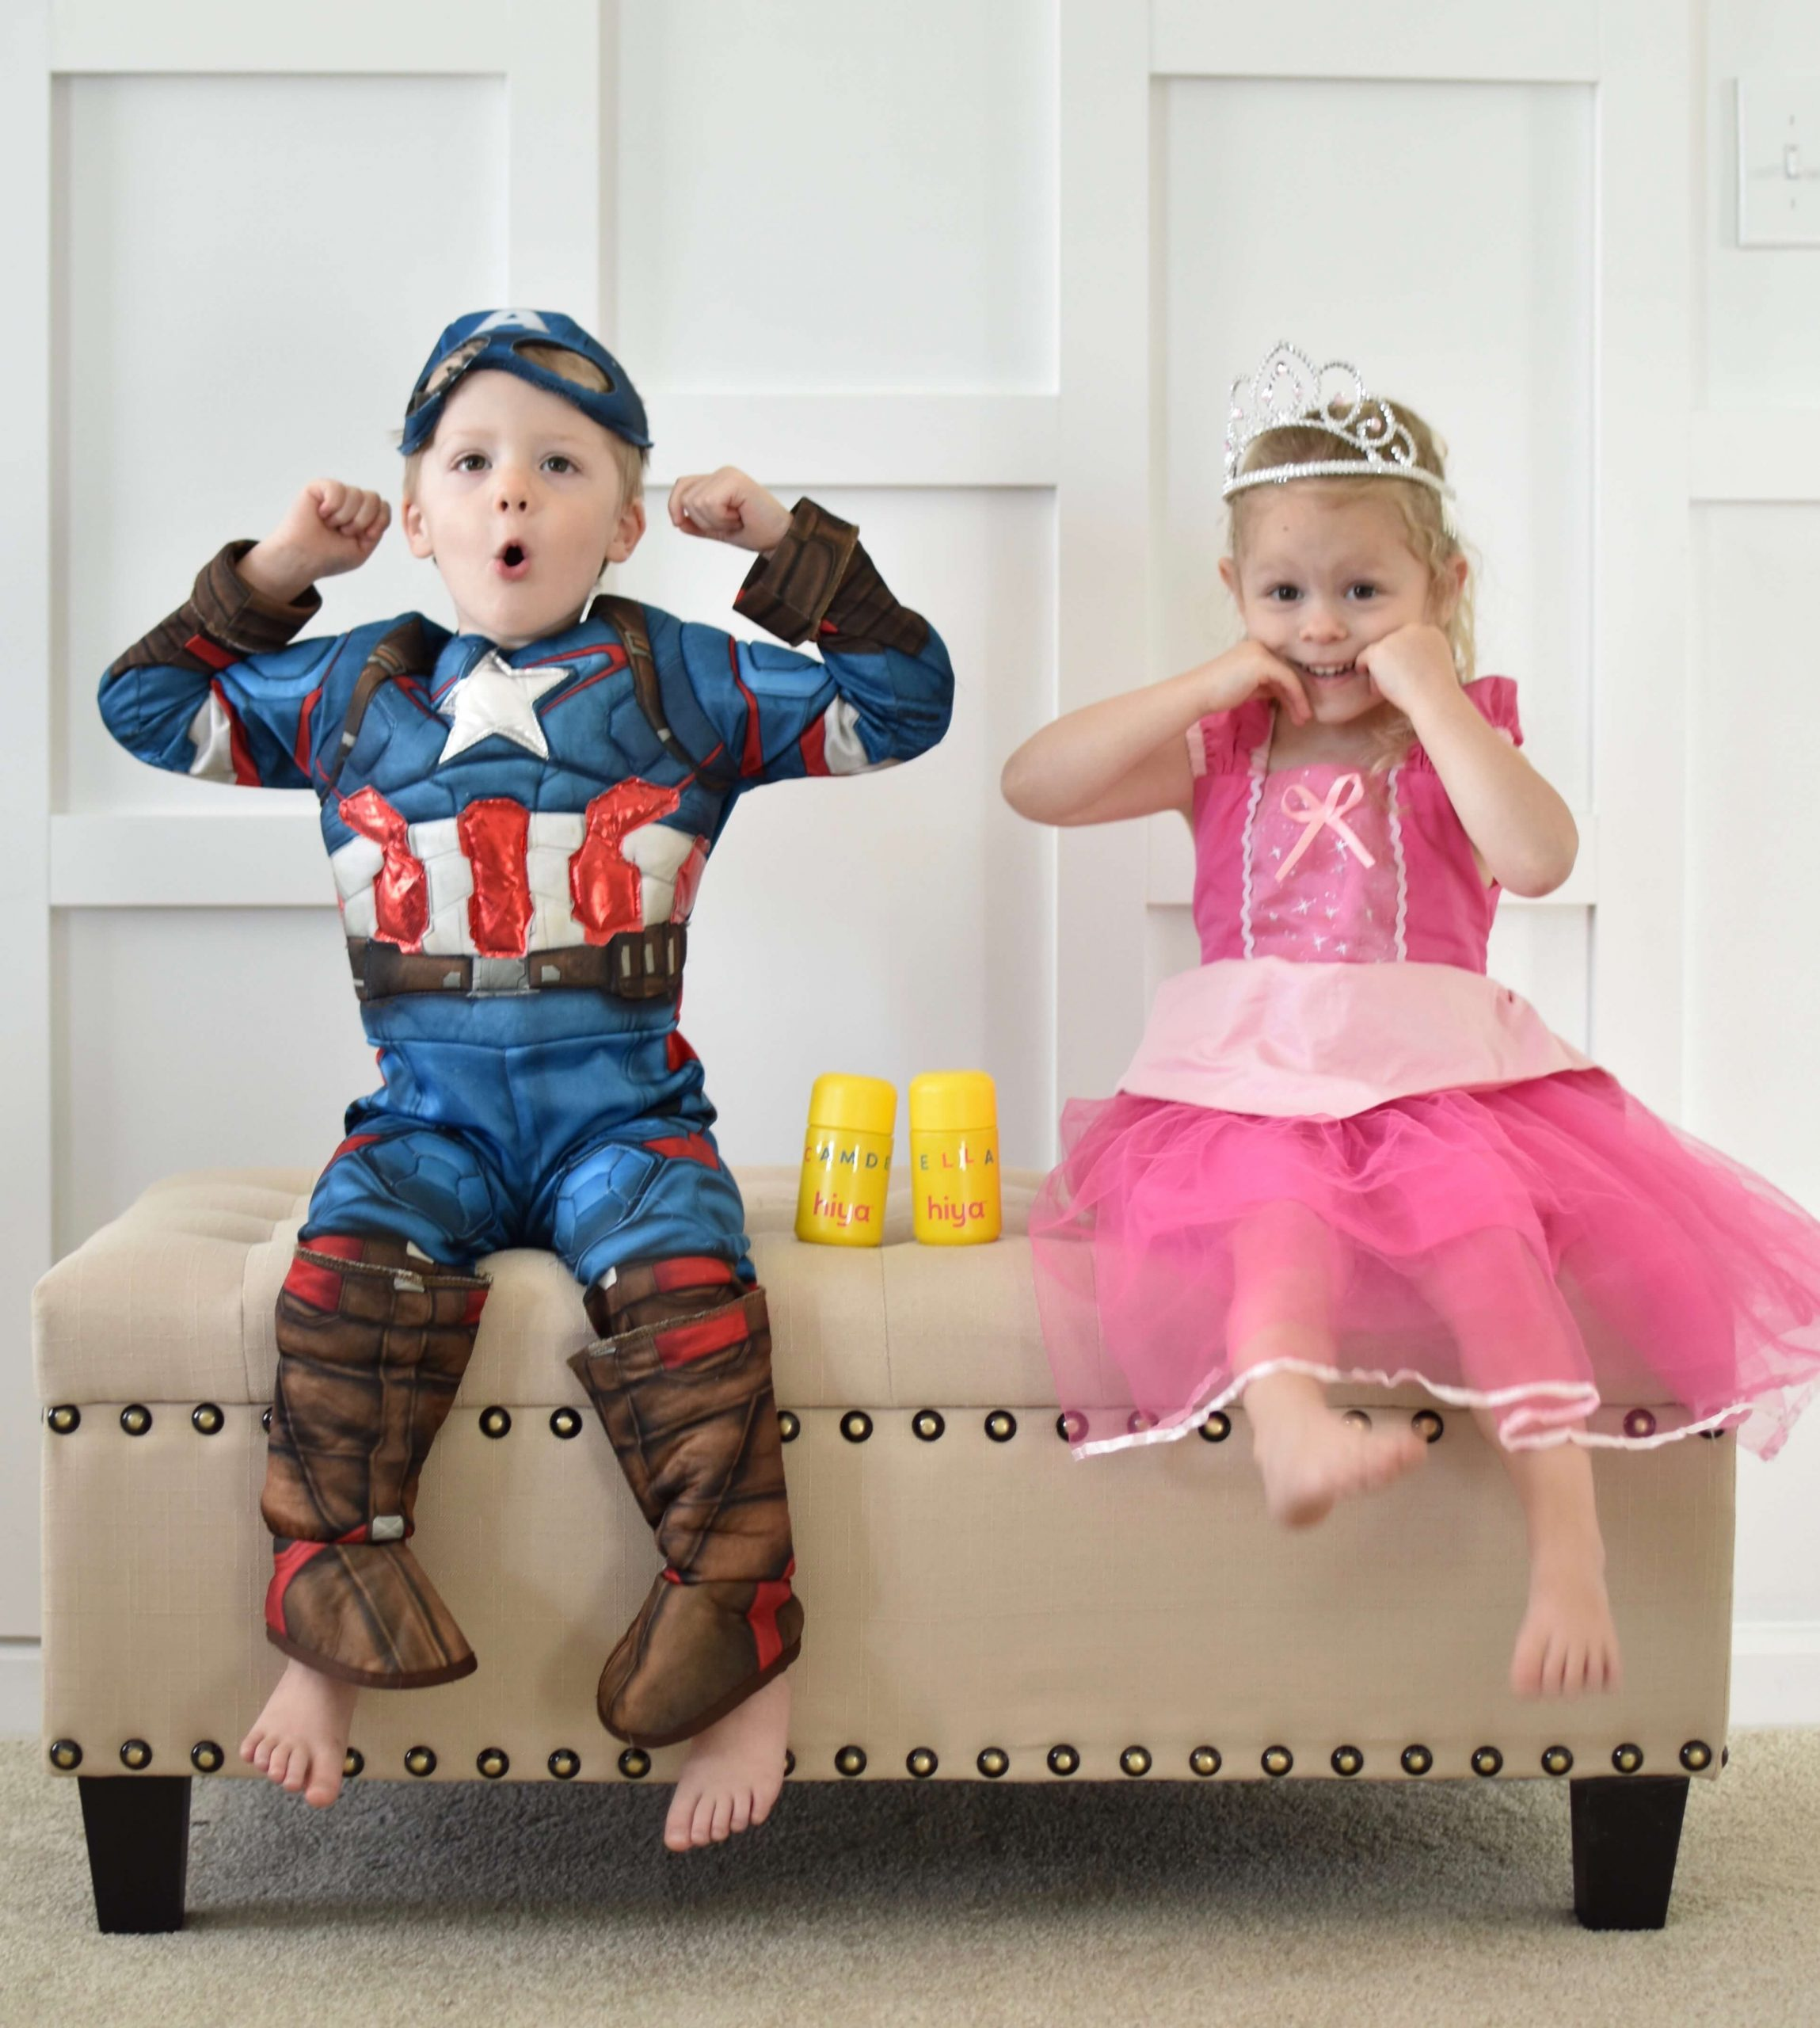 Dreaming of Superheroes and Princesses with Hiya Health